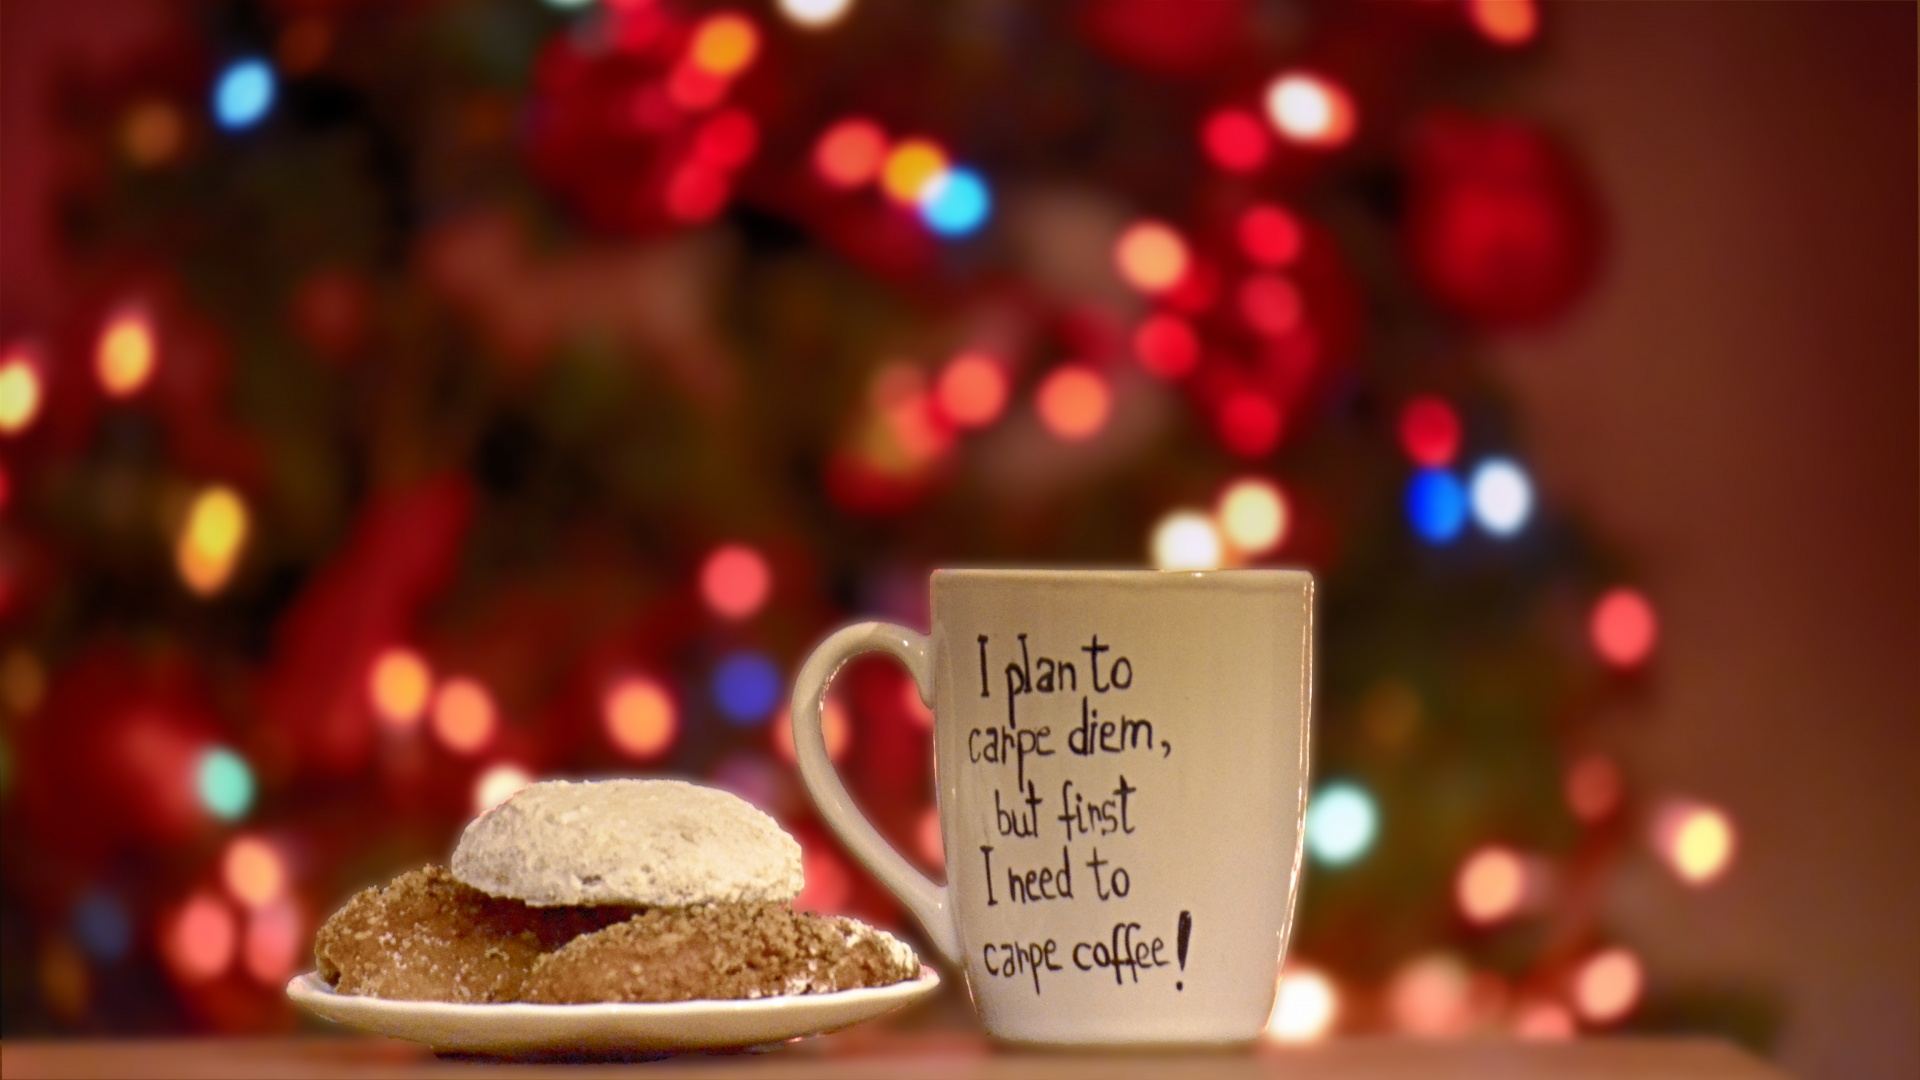 Tree Lights Christmas Coffee Cup Cookies Free Image From Needpix Com